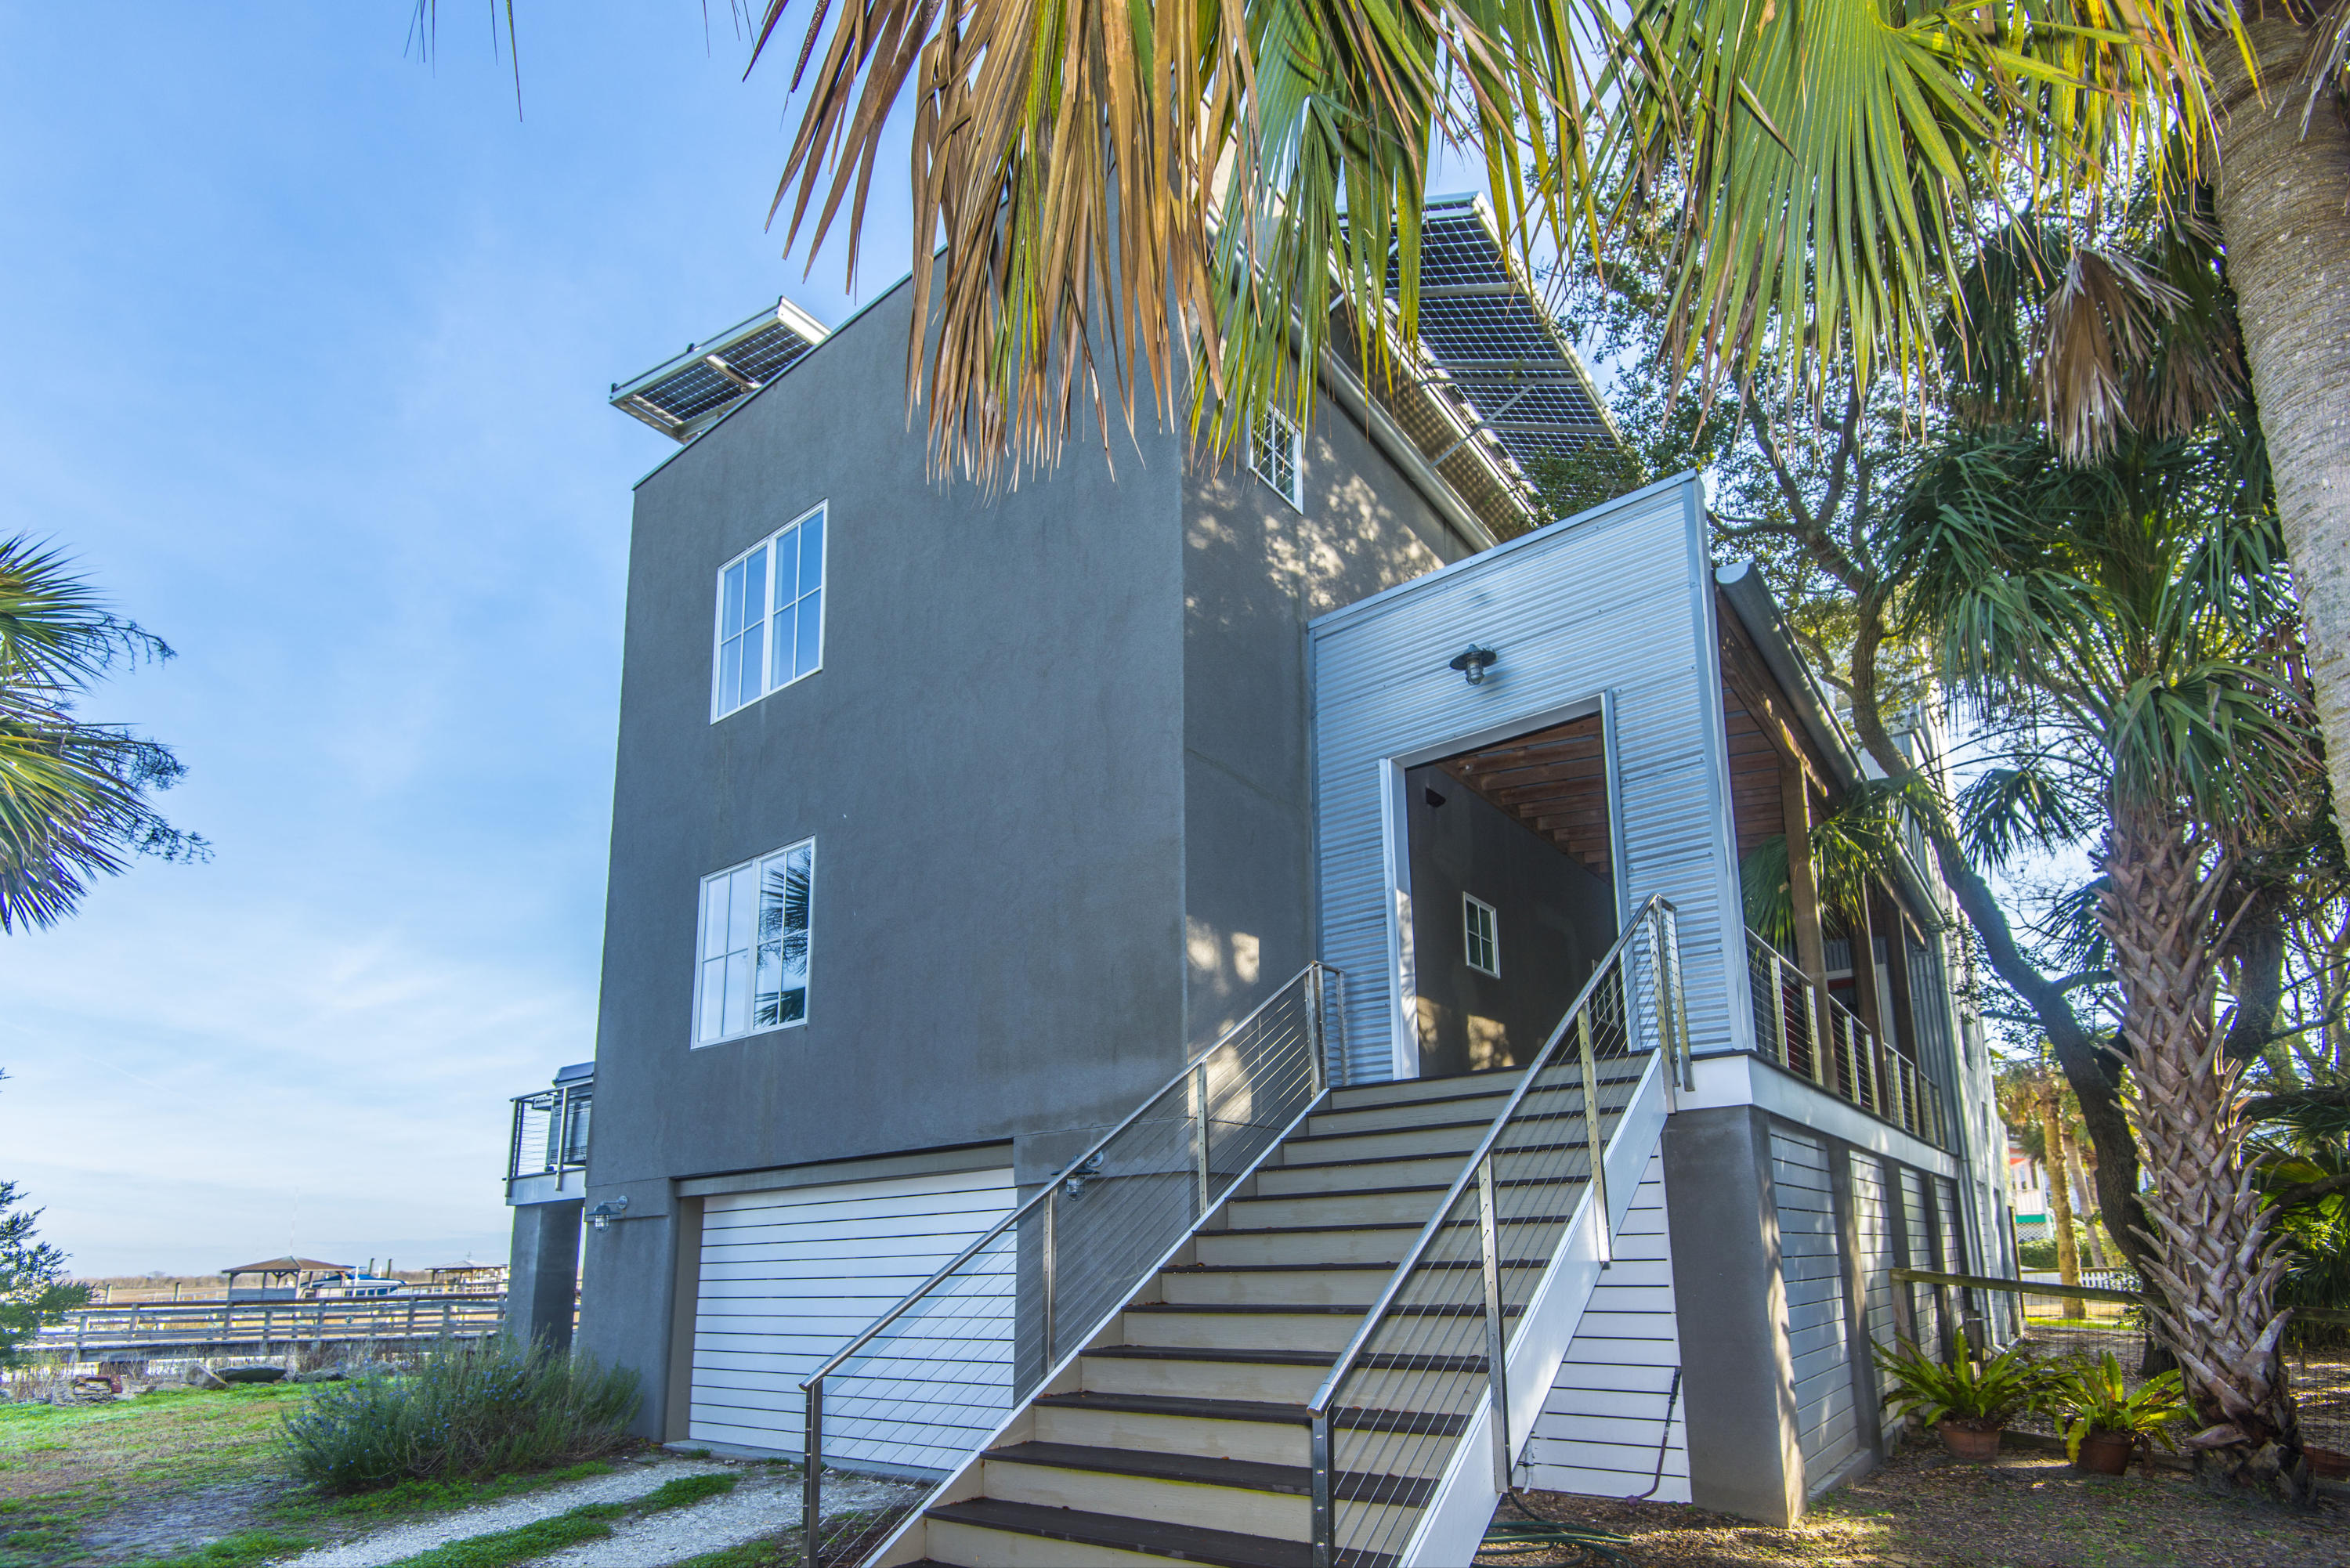 Photo of 407 Oneil St, Sullivan's Island, SC 29482